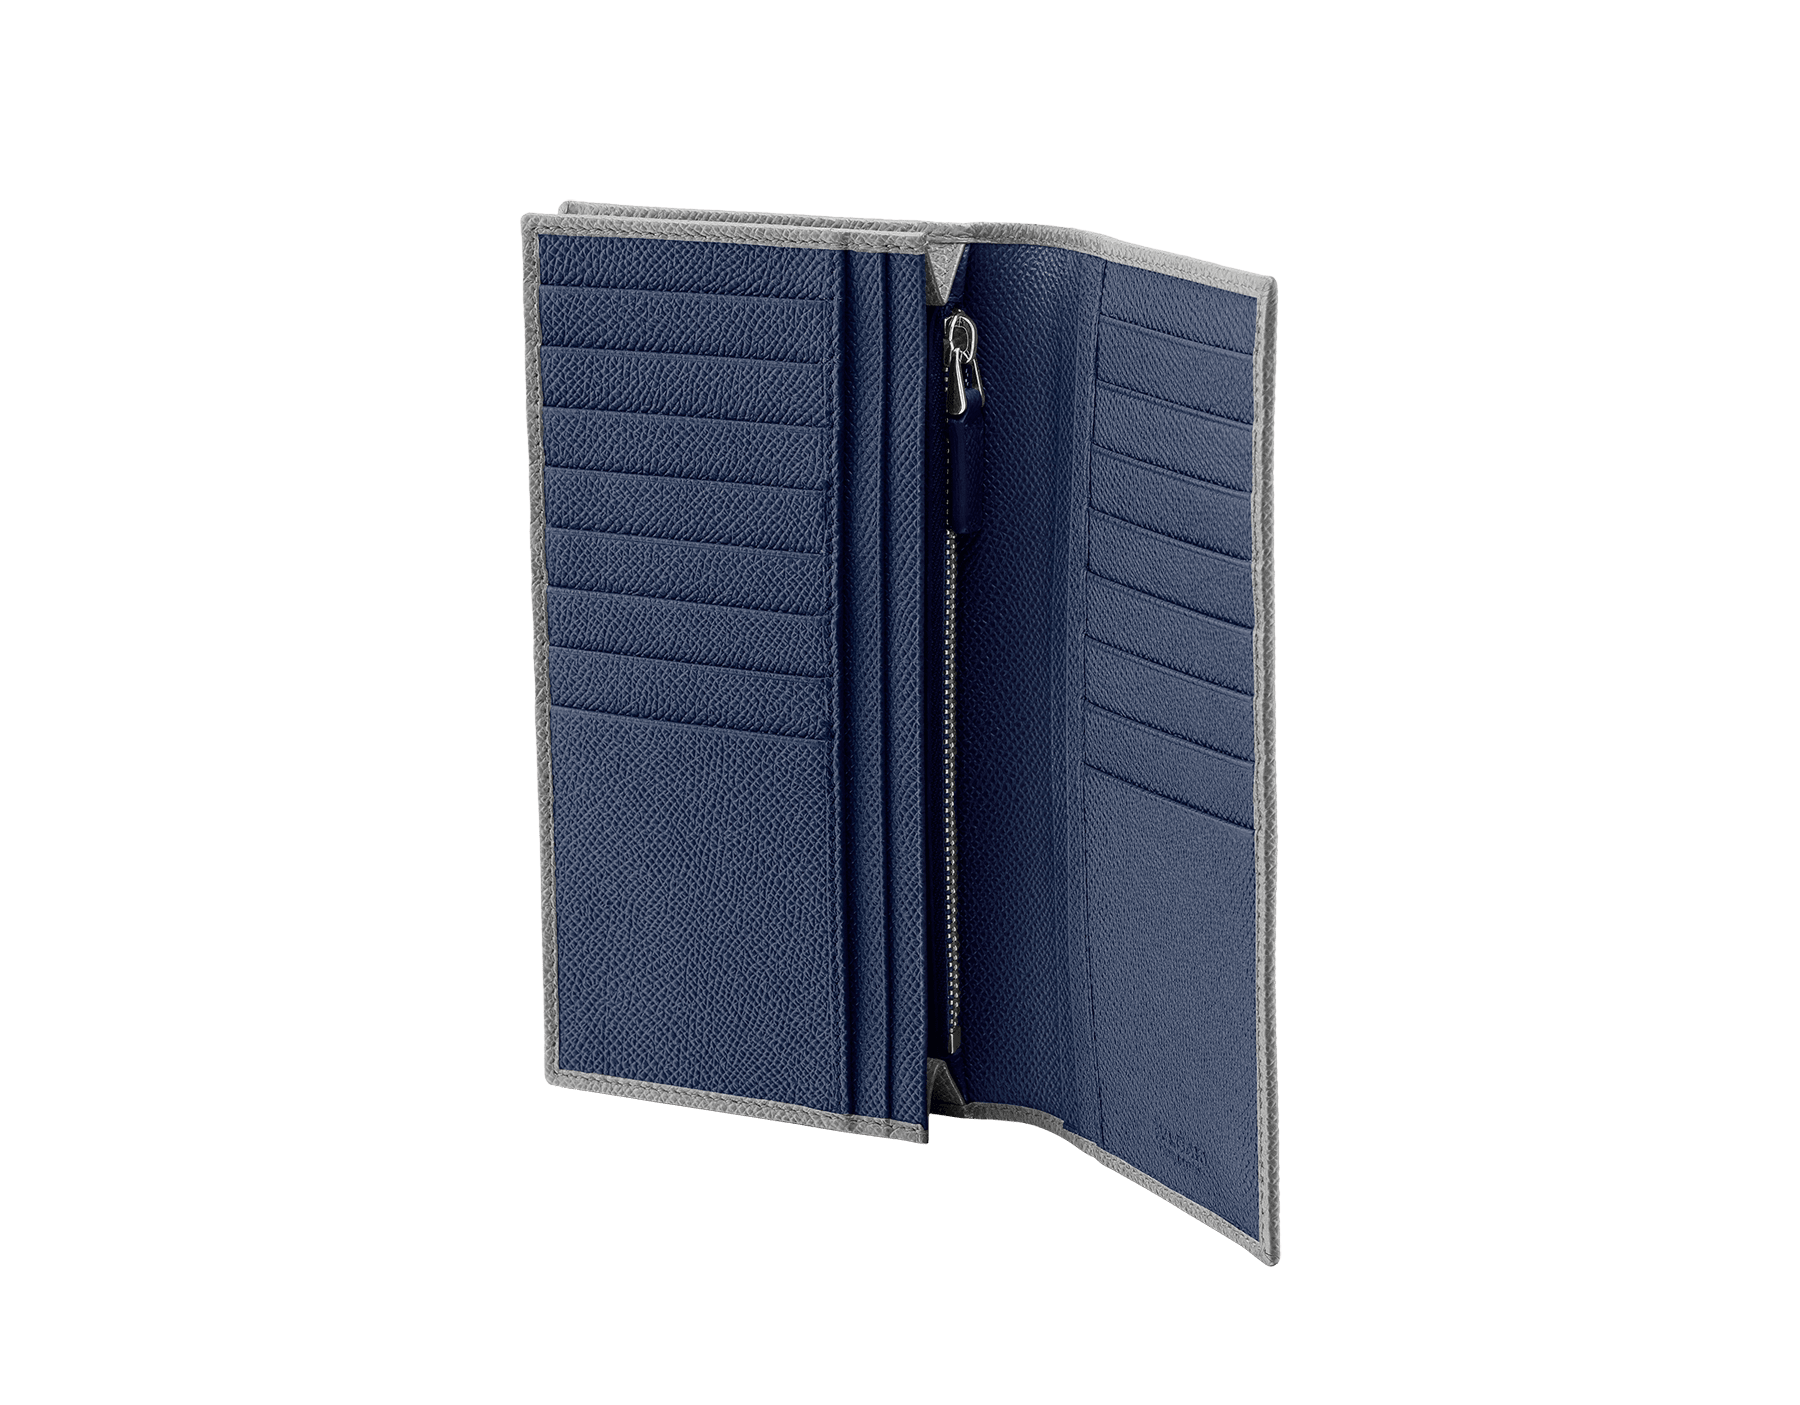 """""""BVLGARI BVLGARI"""" large wallet in Pluto Stone gray and Denim Sapphire blue grained calf leather. Iconic logo-bearing embellishment in palladium-plated brass. BBM-WLT-Y-ZP-16C-gcl image 2"""